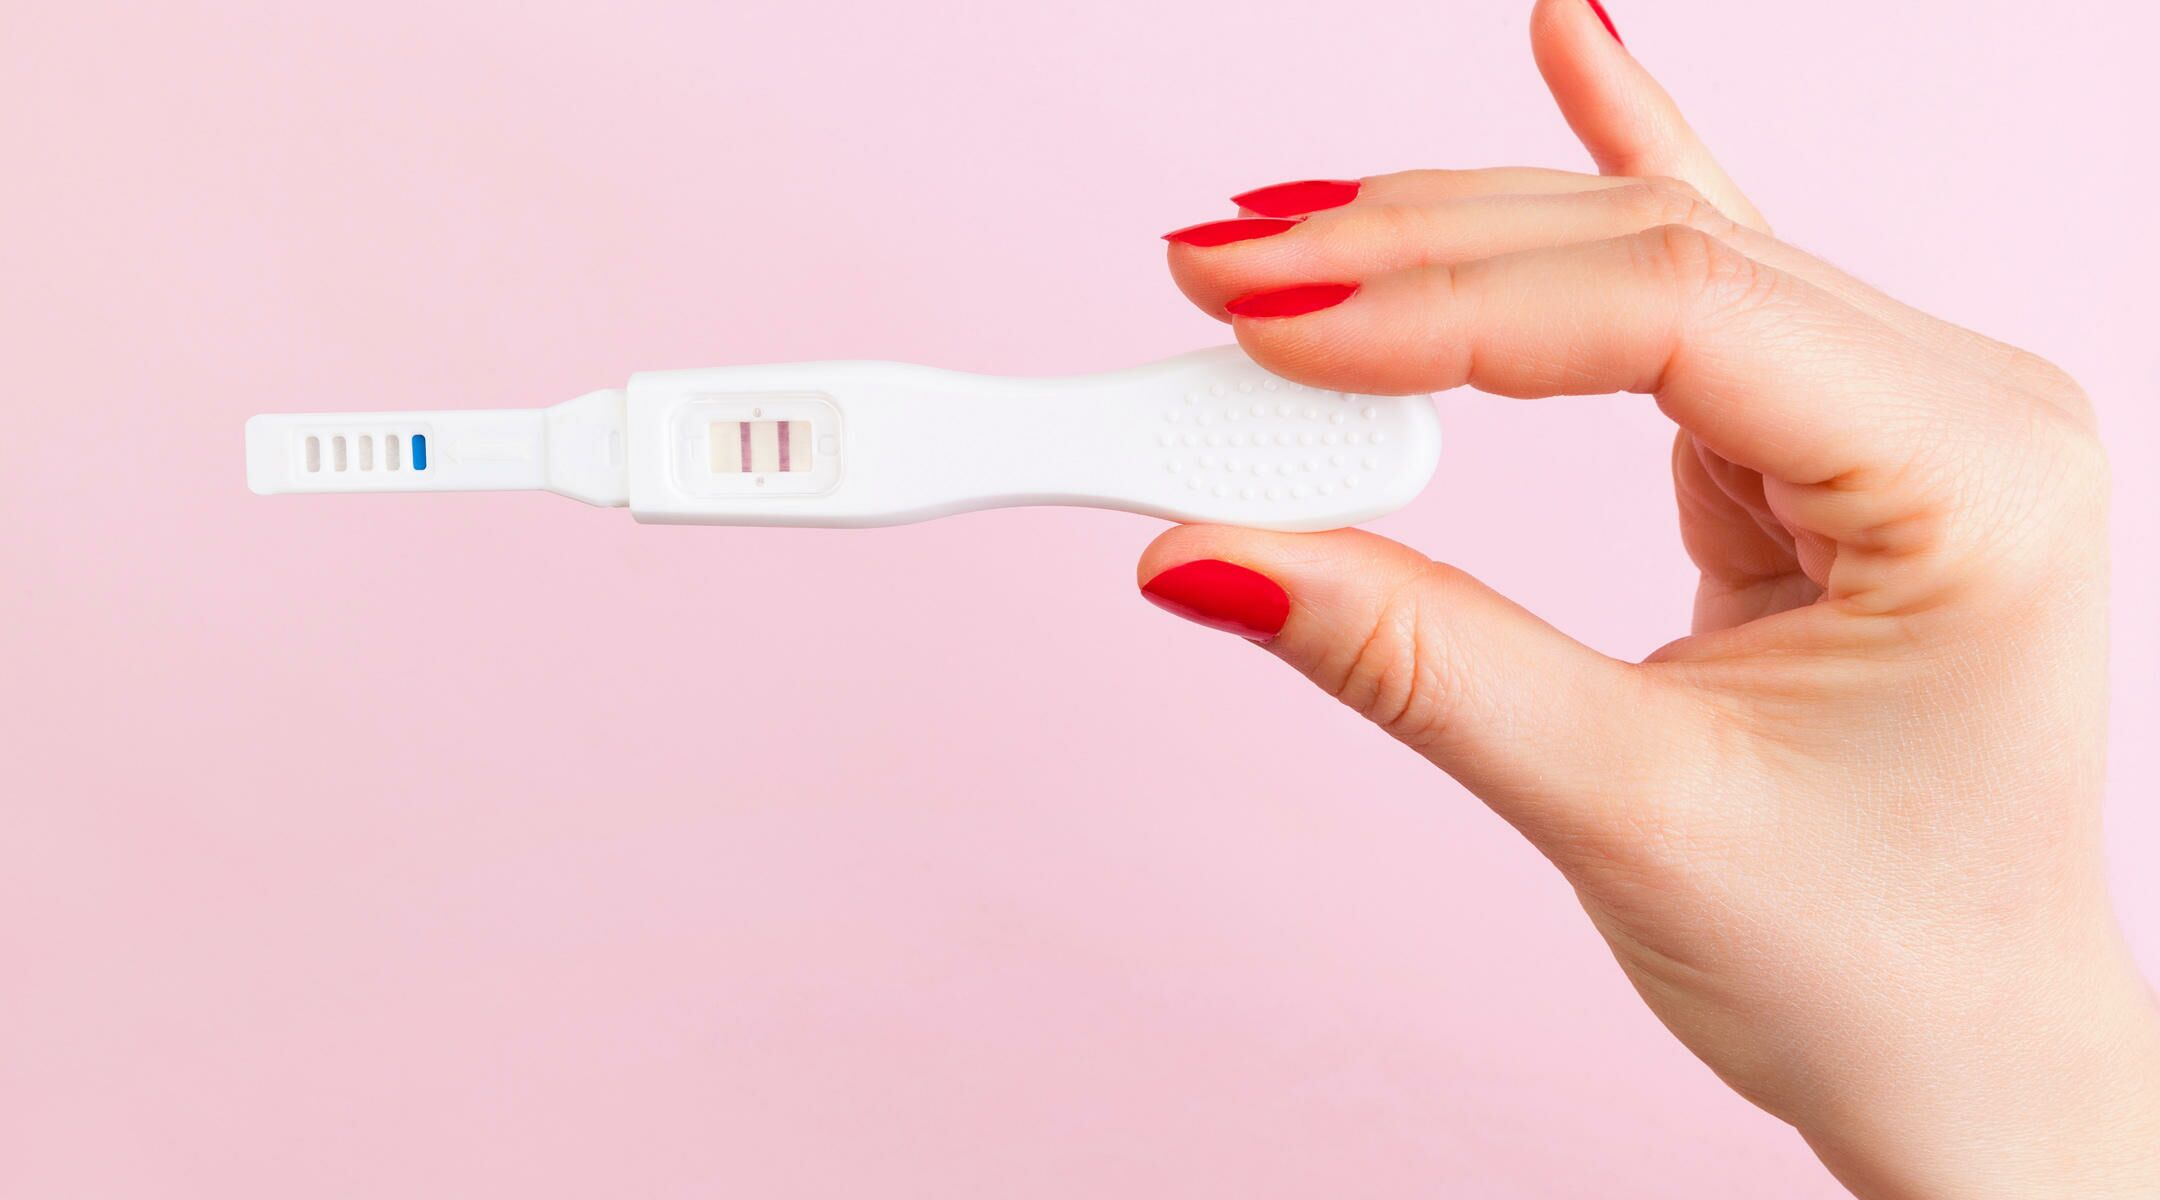 home pregnancy test in hand